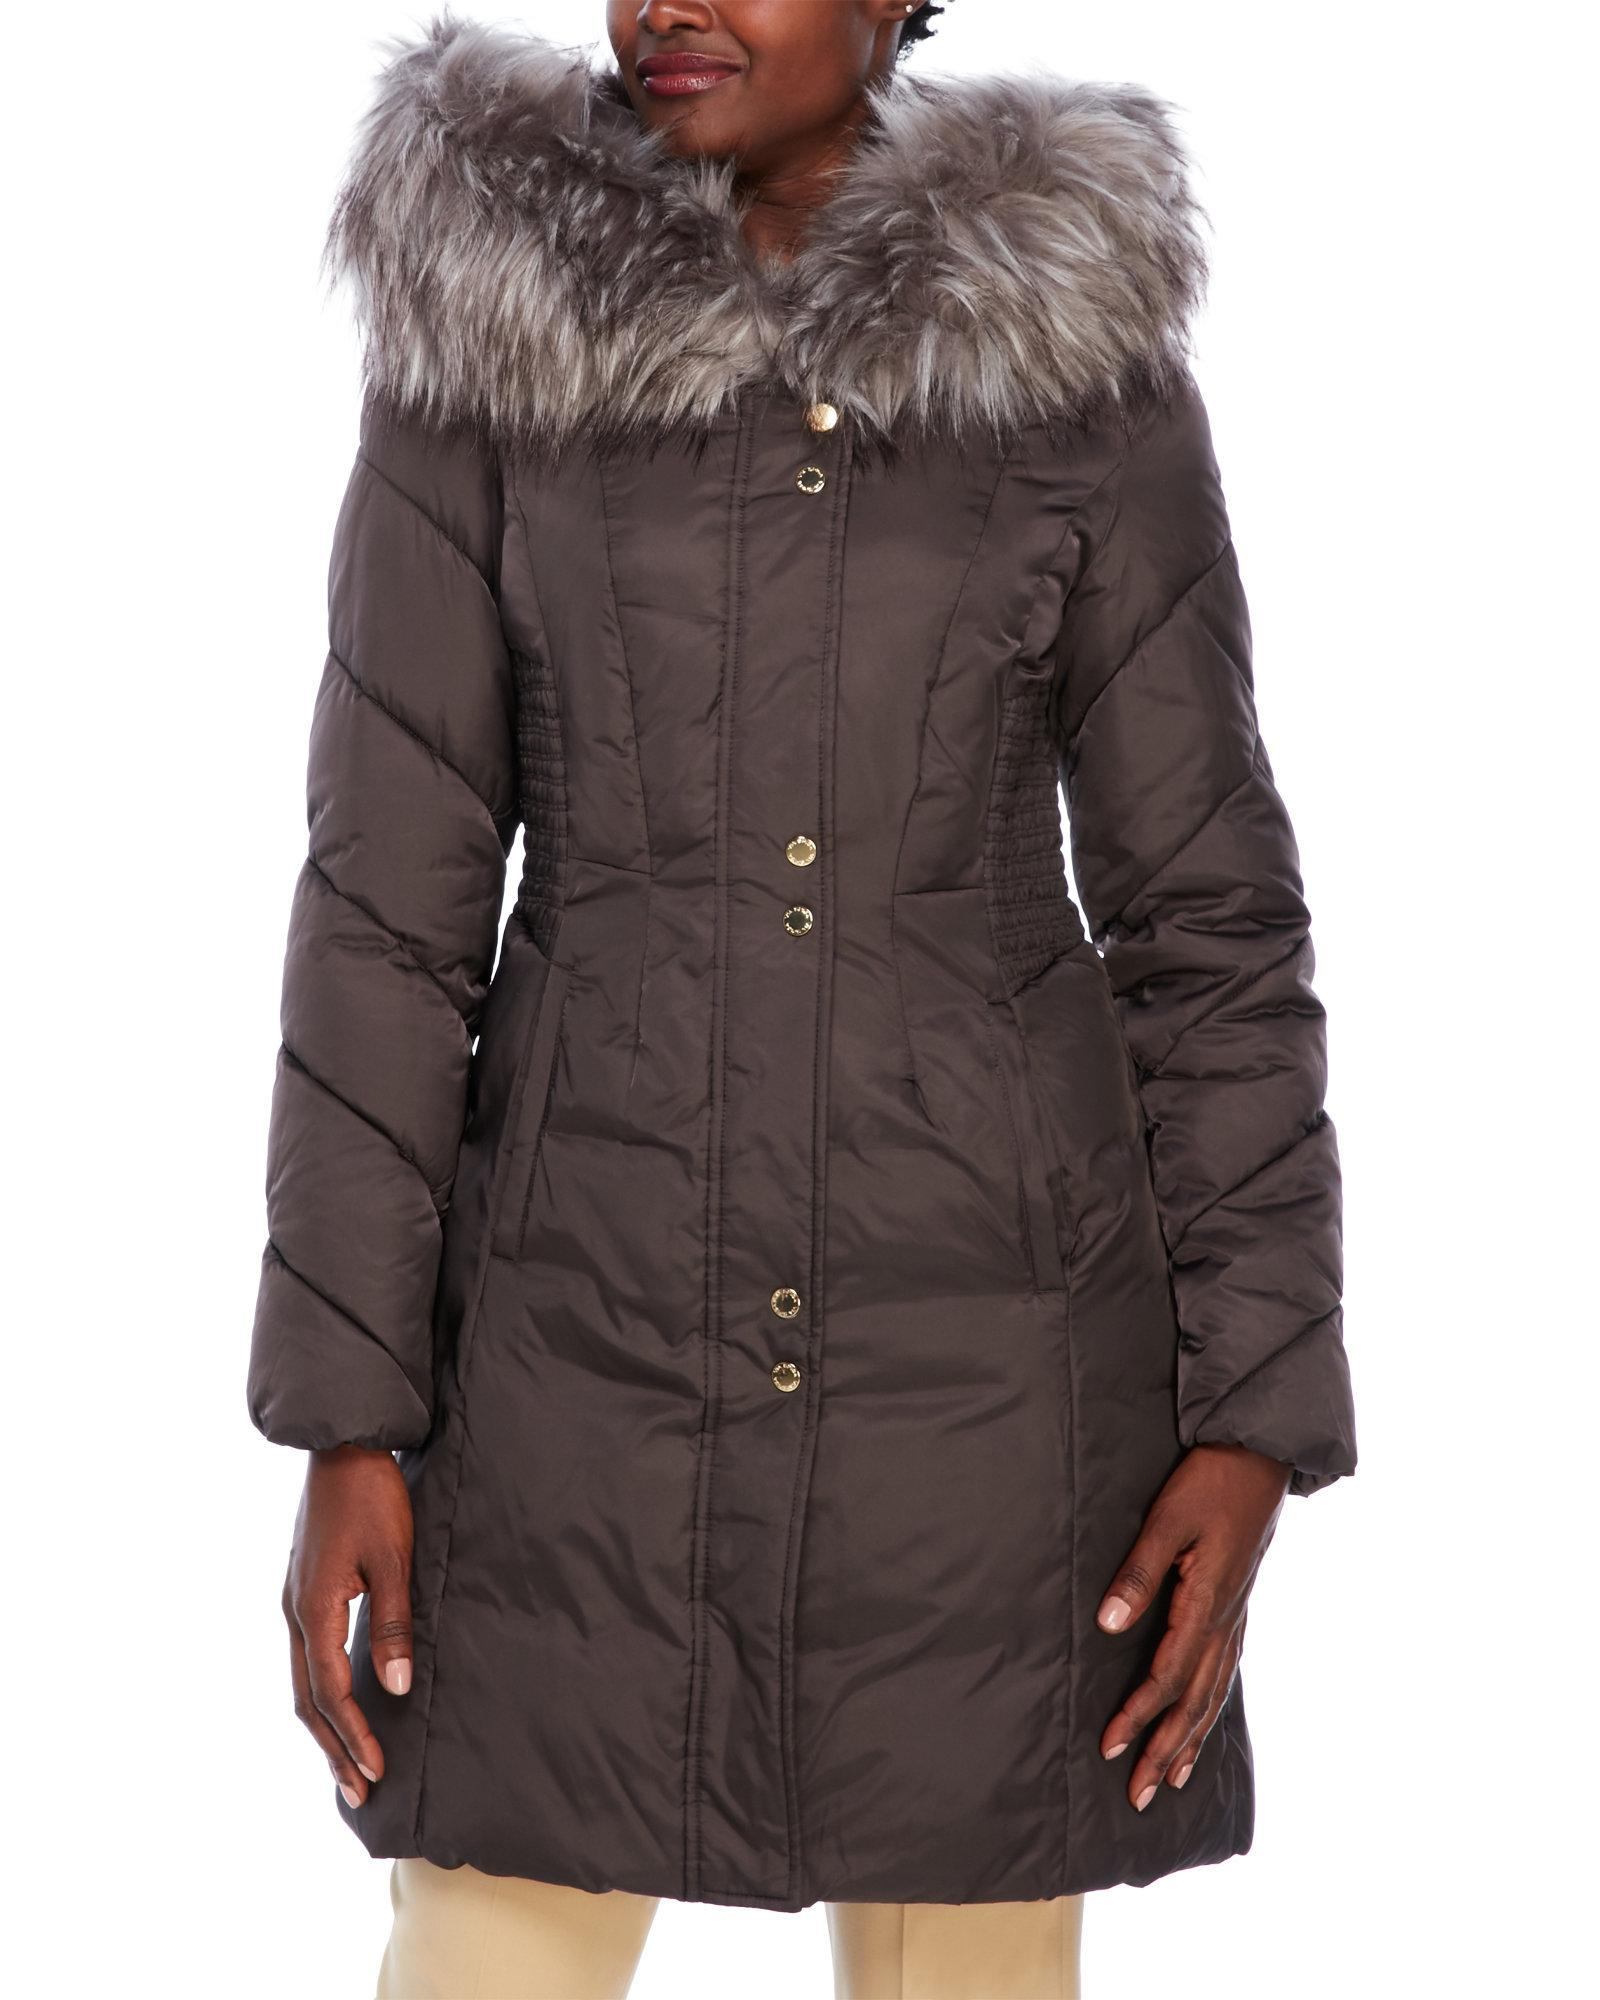 Via Spiga Hooded Faux Fur Trim Puffer Coat In Brown Lyst